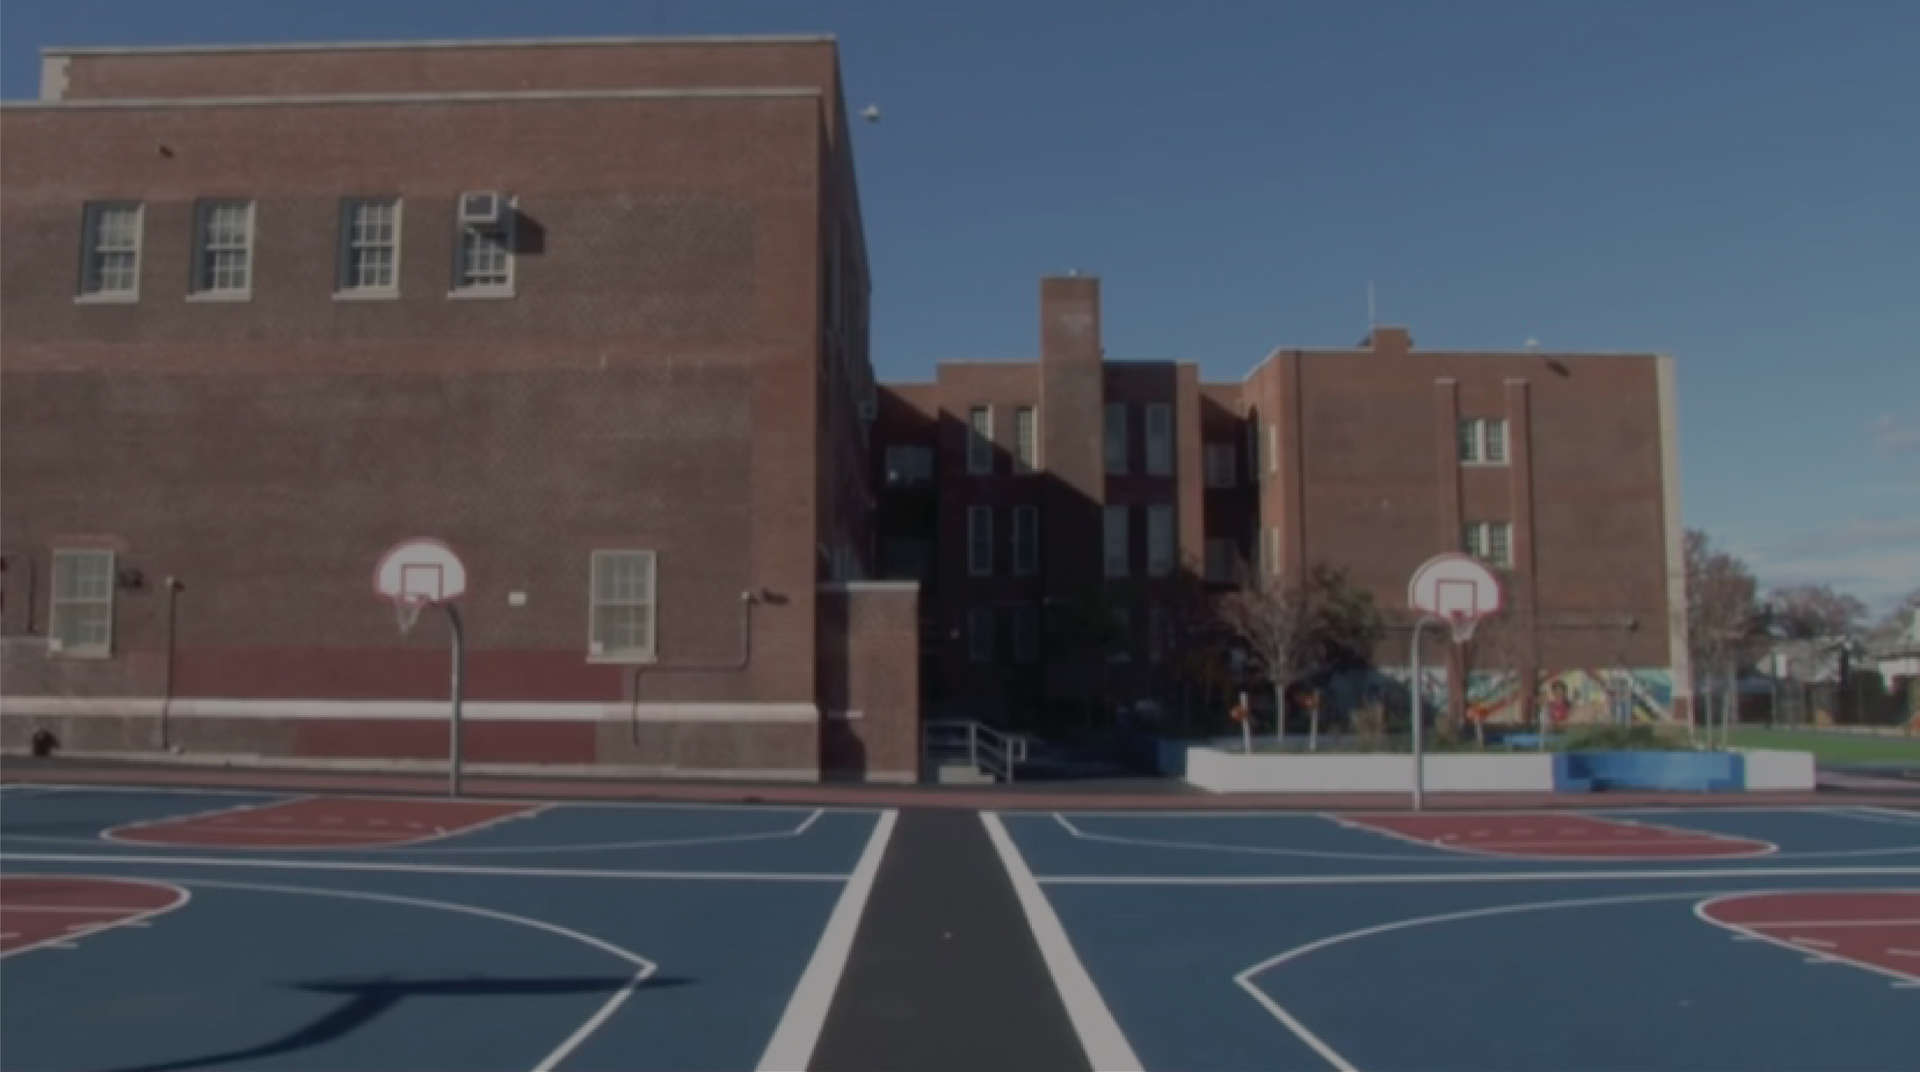 School basketball courts